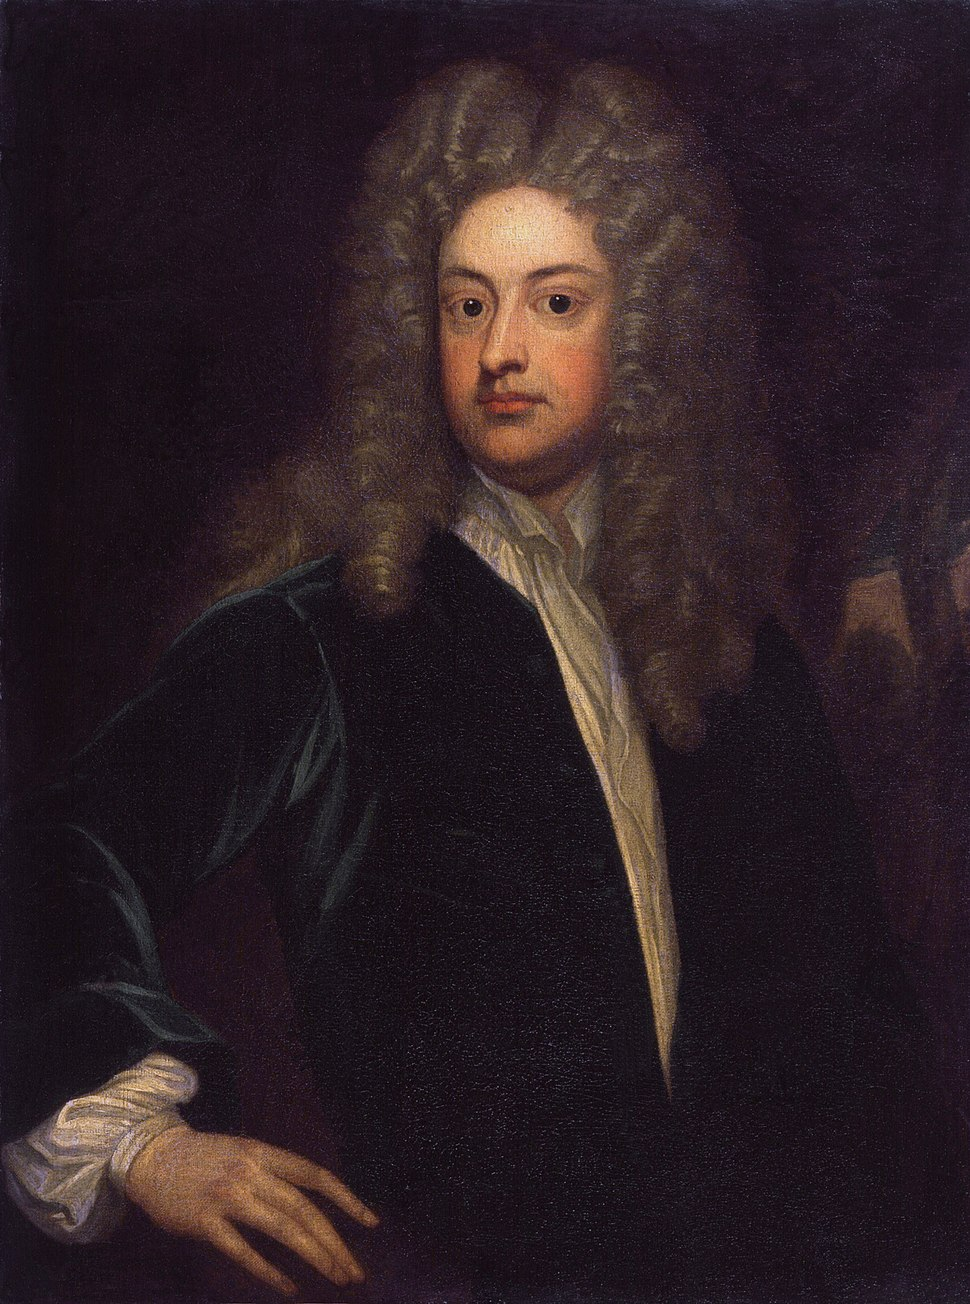 Joseph Addison by Sir Godfrey Kneller, Bt